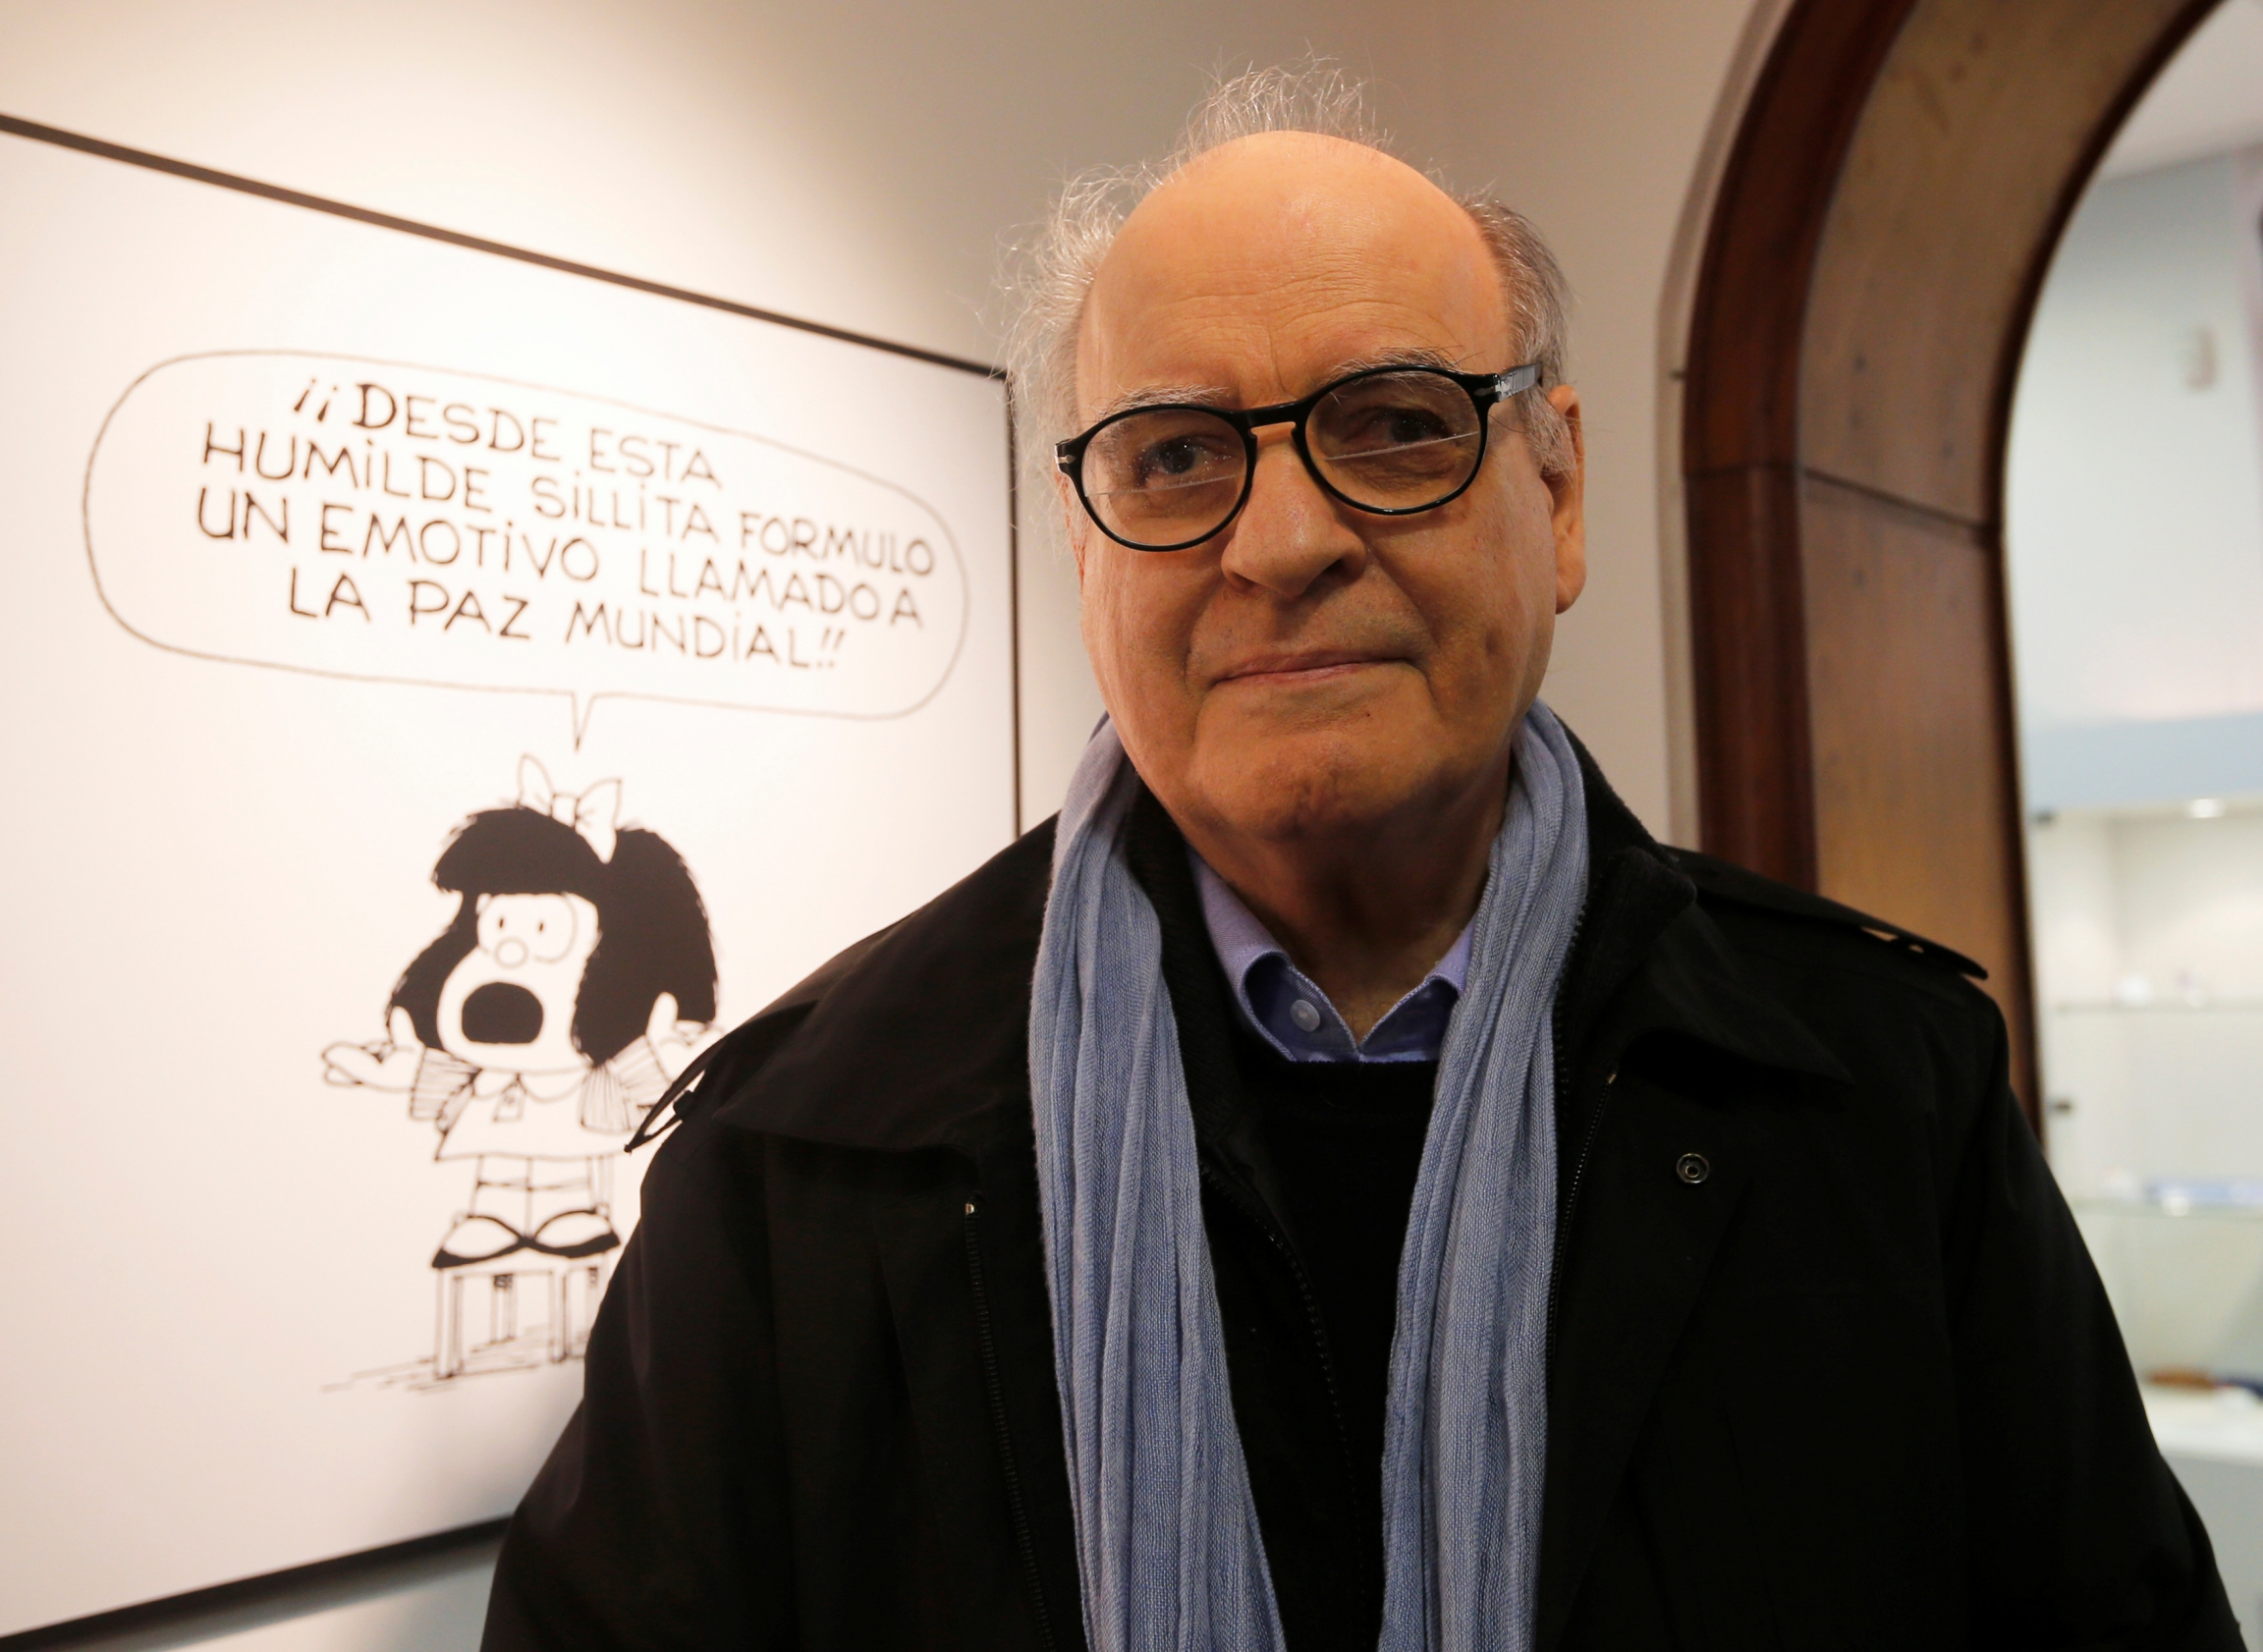 Argentine cartoonist Joaquín Salvador Lavado, also known by his pen name Quino, poses in front of an image of his most famous comic character Mafalda during the opening ceremony of the exhibition of his works at the Museo del Humor in Buenos Aires, June 1